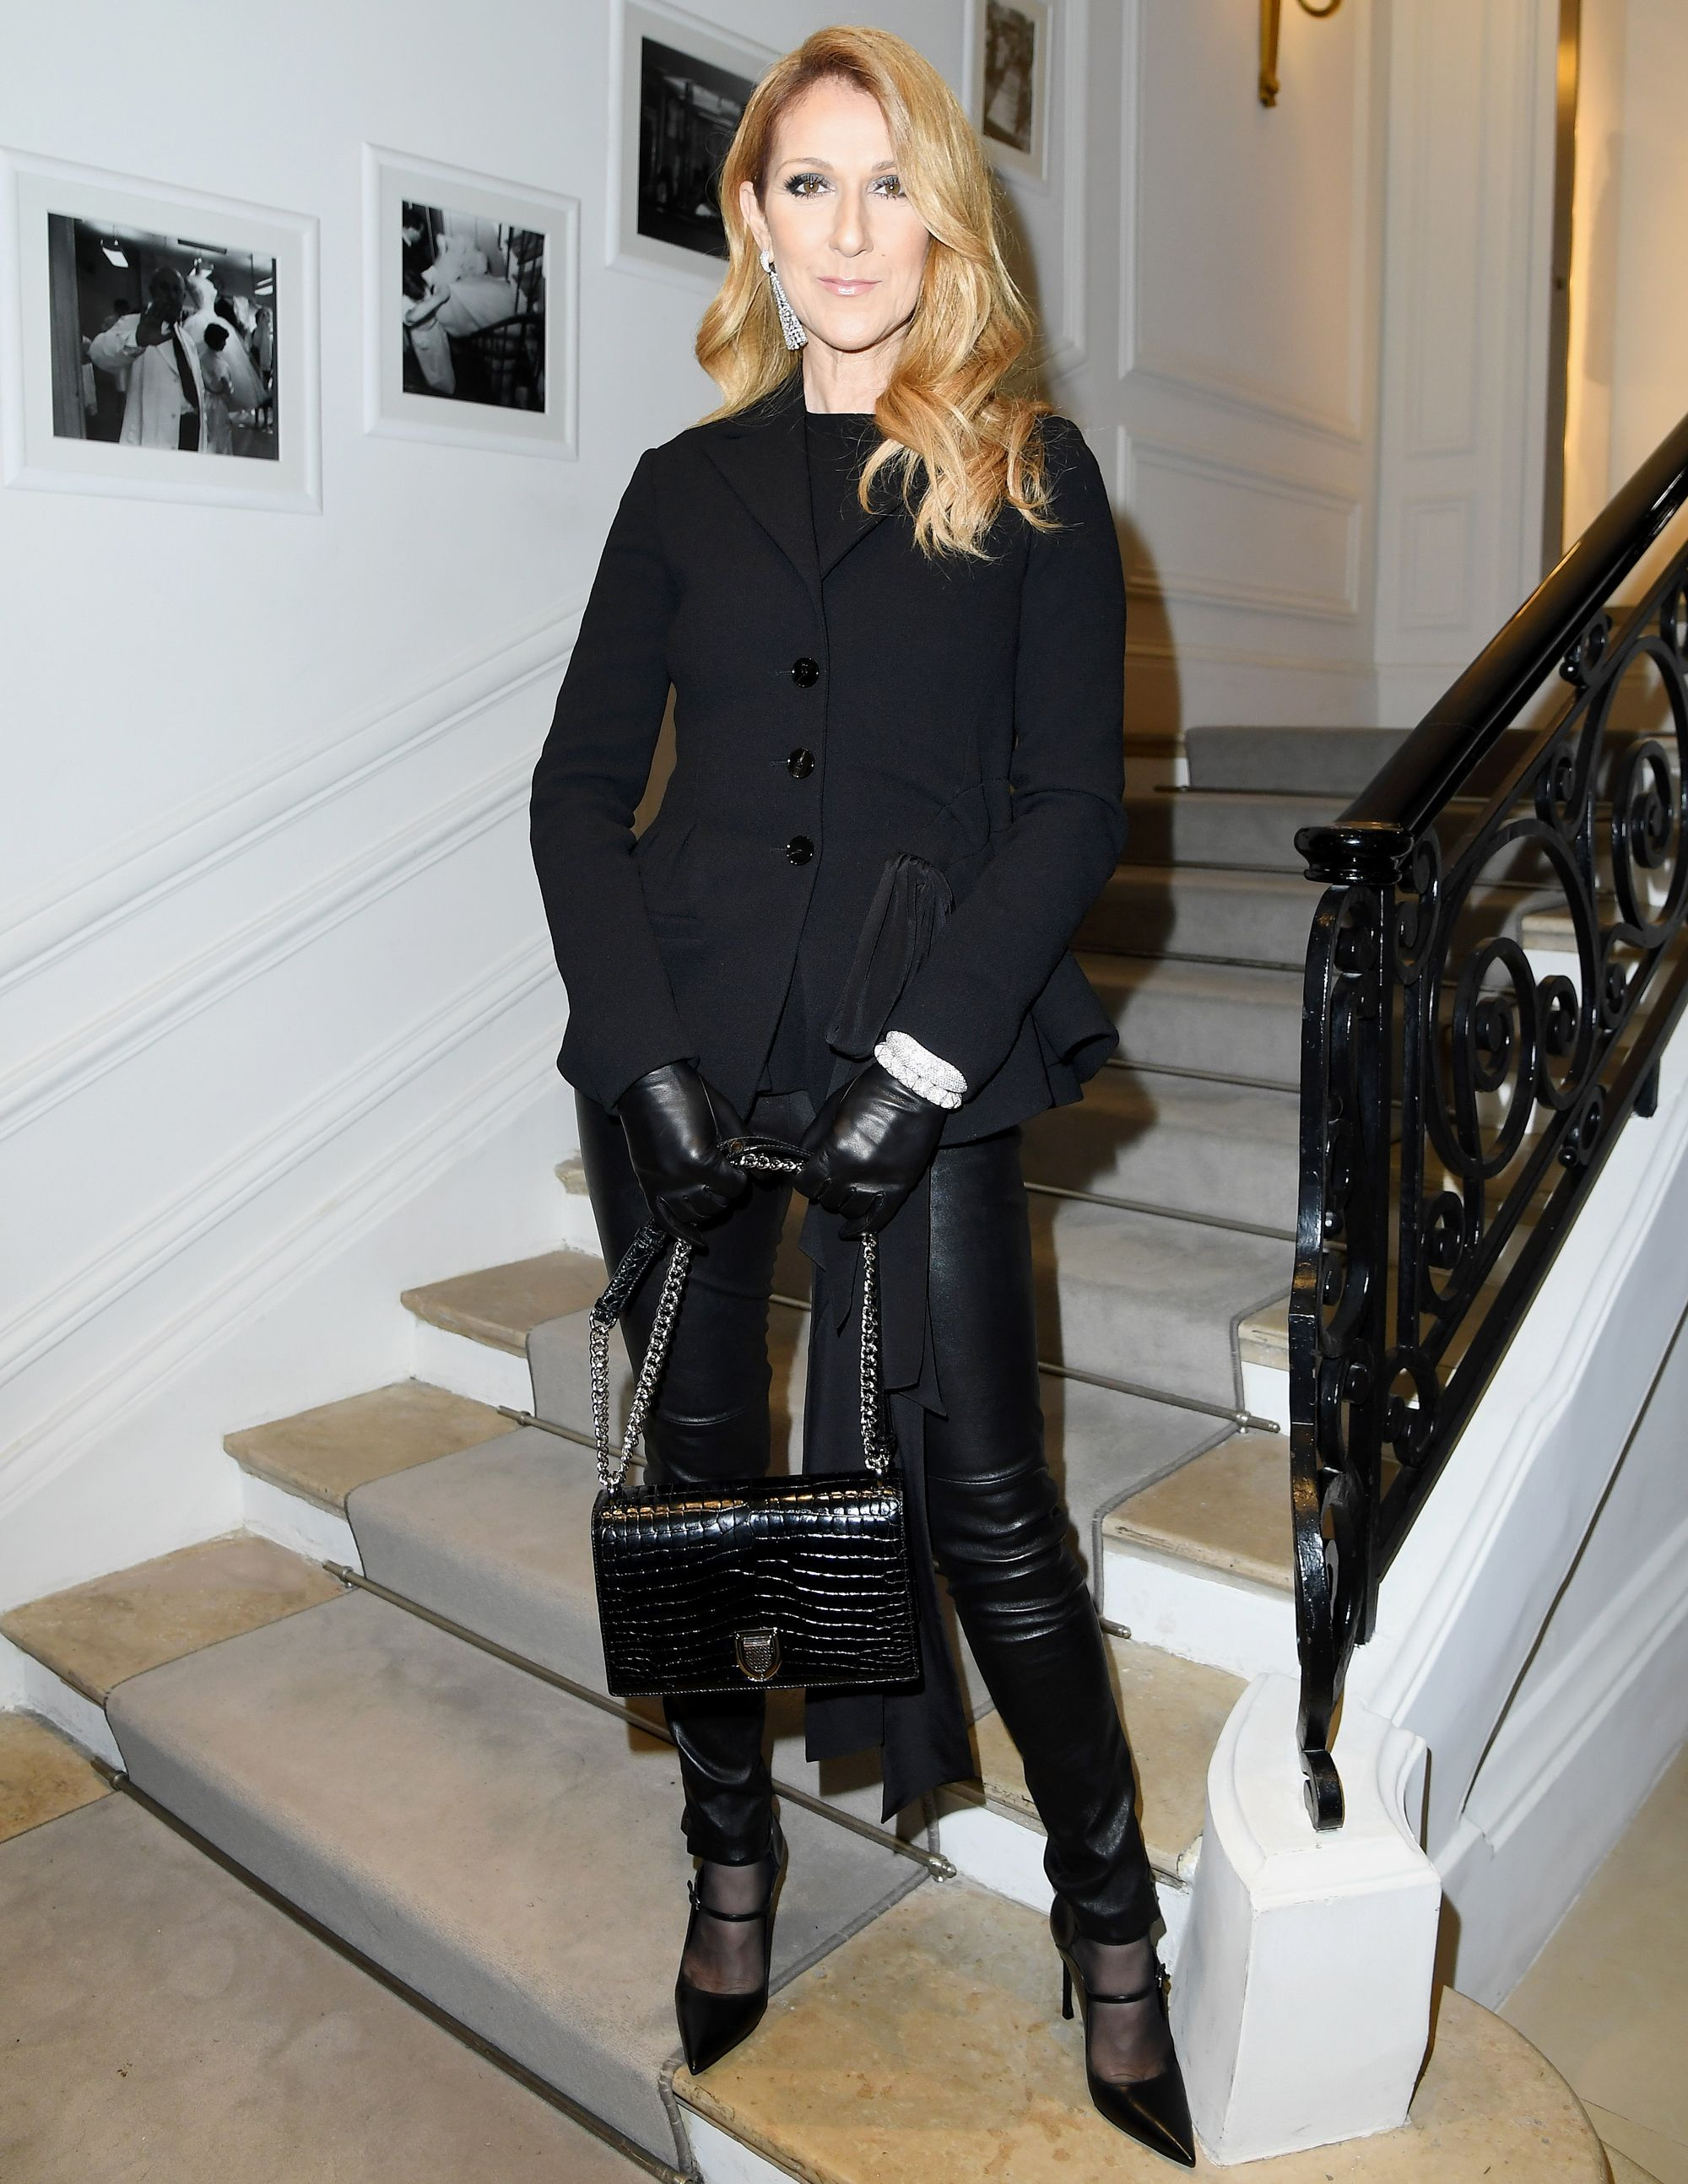 ecc626da101d Take a look at major summer style moments that have defined Celine Dion s  new look.